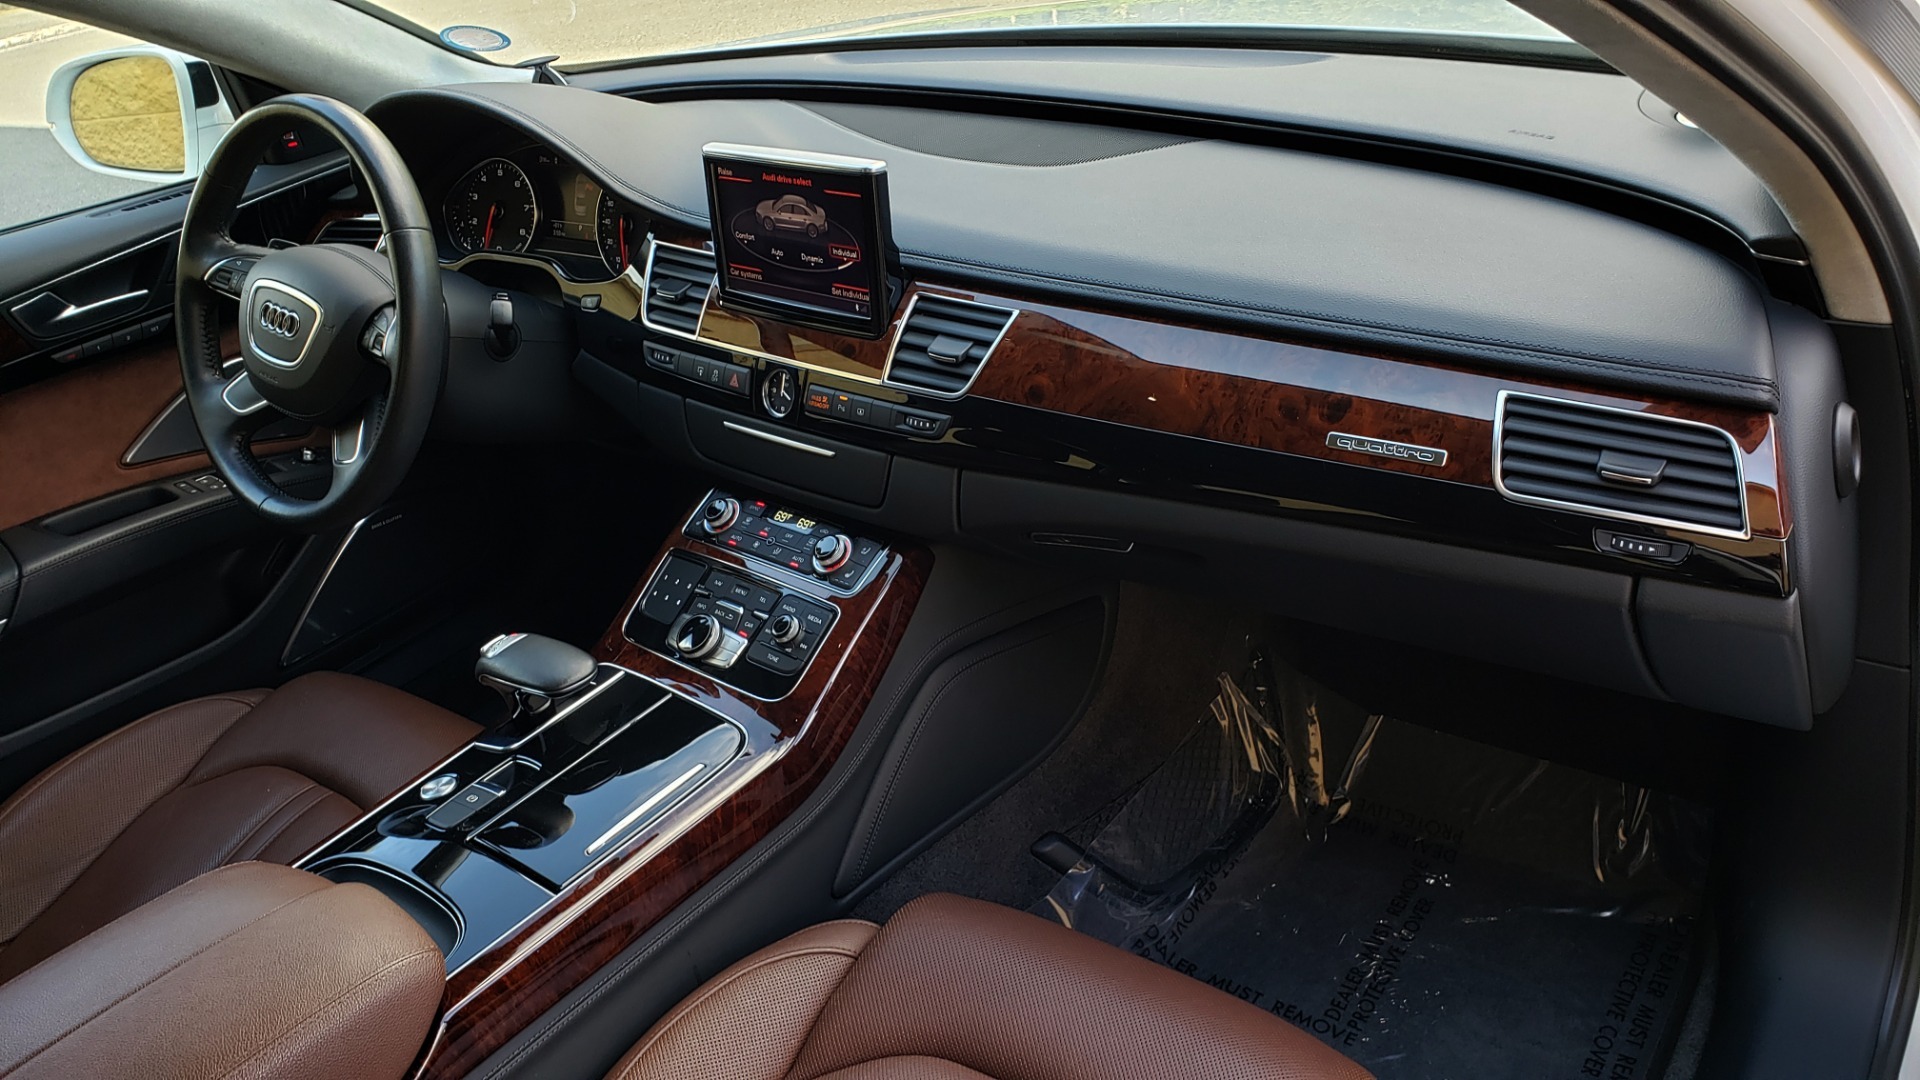 Used 2011 Audi A8 L QUATTRO / NAV / PANO-ROOF / REARVIEW / BSM / B&O SND for sale Sold at Formula Imports in Charlotte NC 28227 75